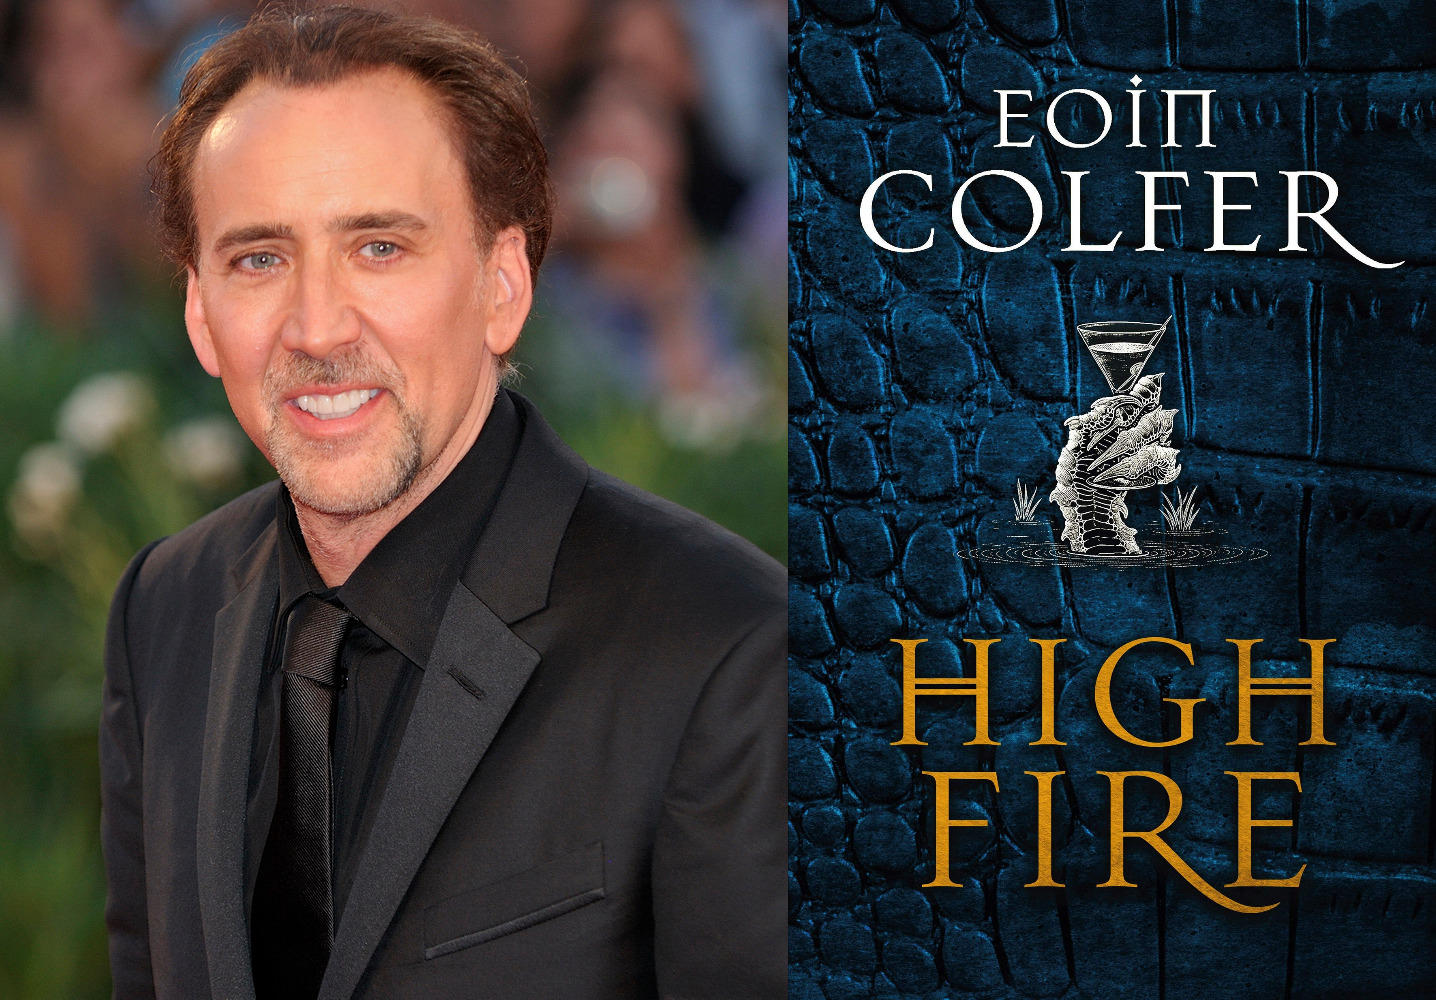 Nic Cage Will Voice Vern in Amazon's Adaptation of Eoin Colfer's Highfire